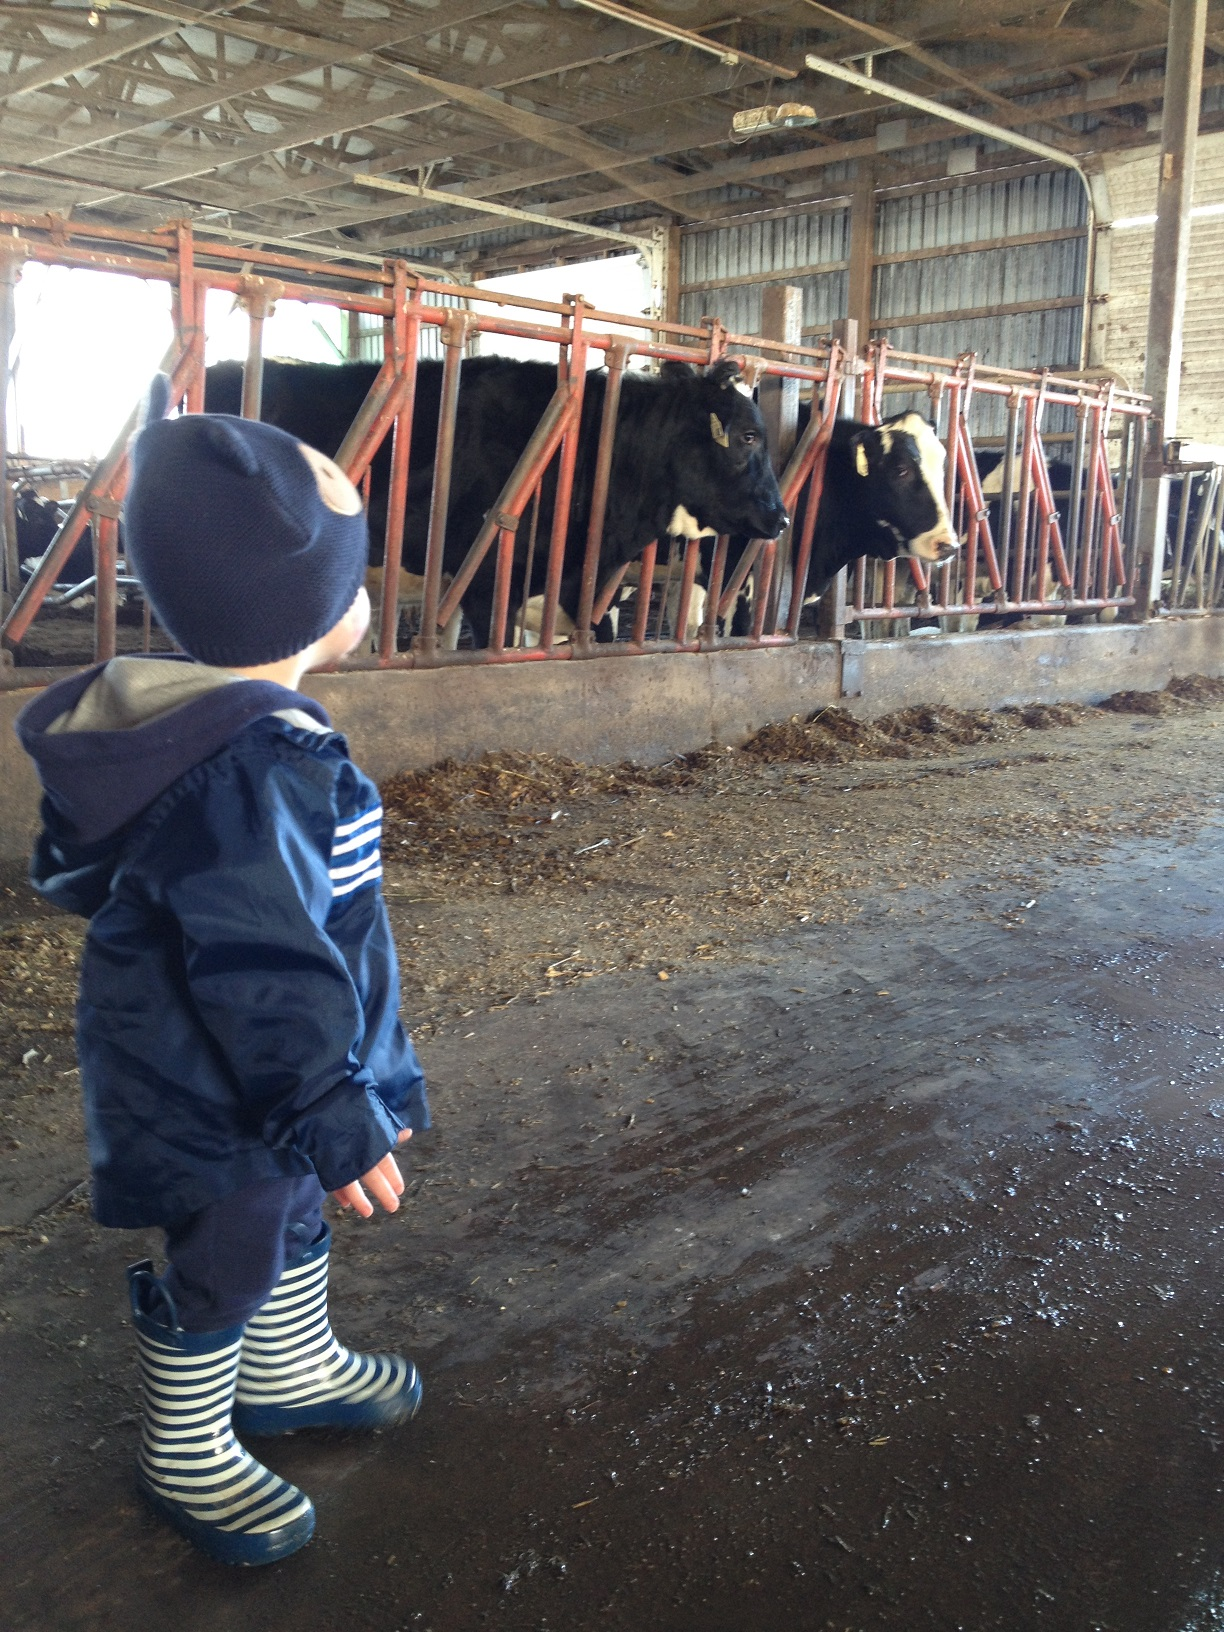 visit to a dairy farm I have a resource that may help you, as well as your clients and audiences, better connect to the dairy farmers and dairy farming practices: join me on a dairy farm tour.